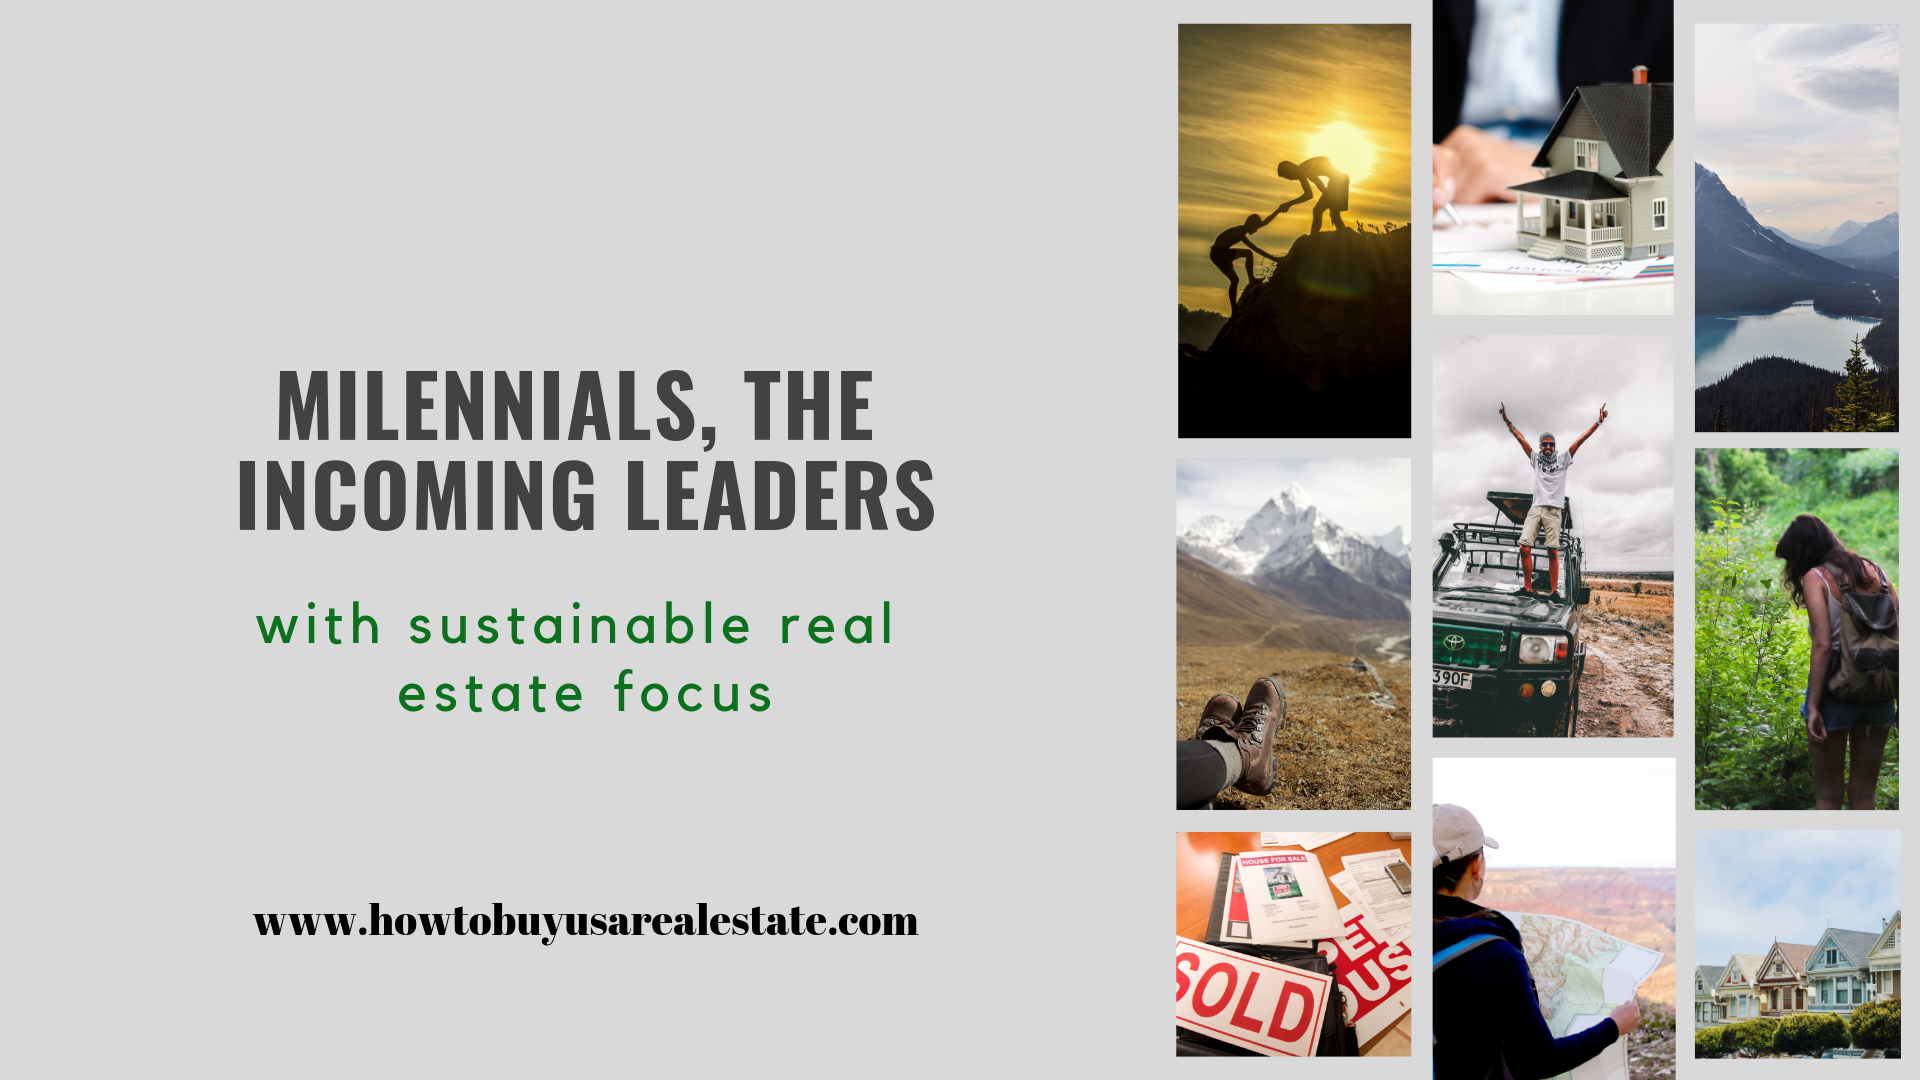 Milennials, the incoming leaders (1).png